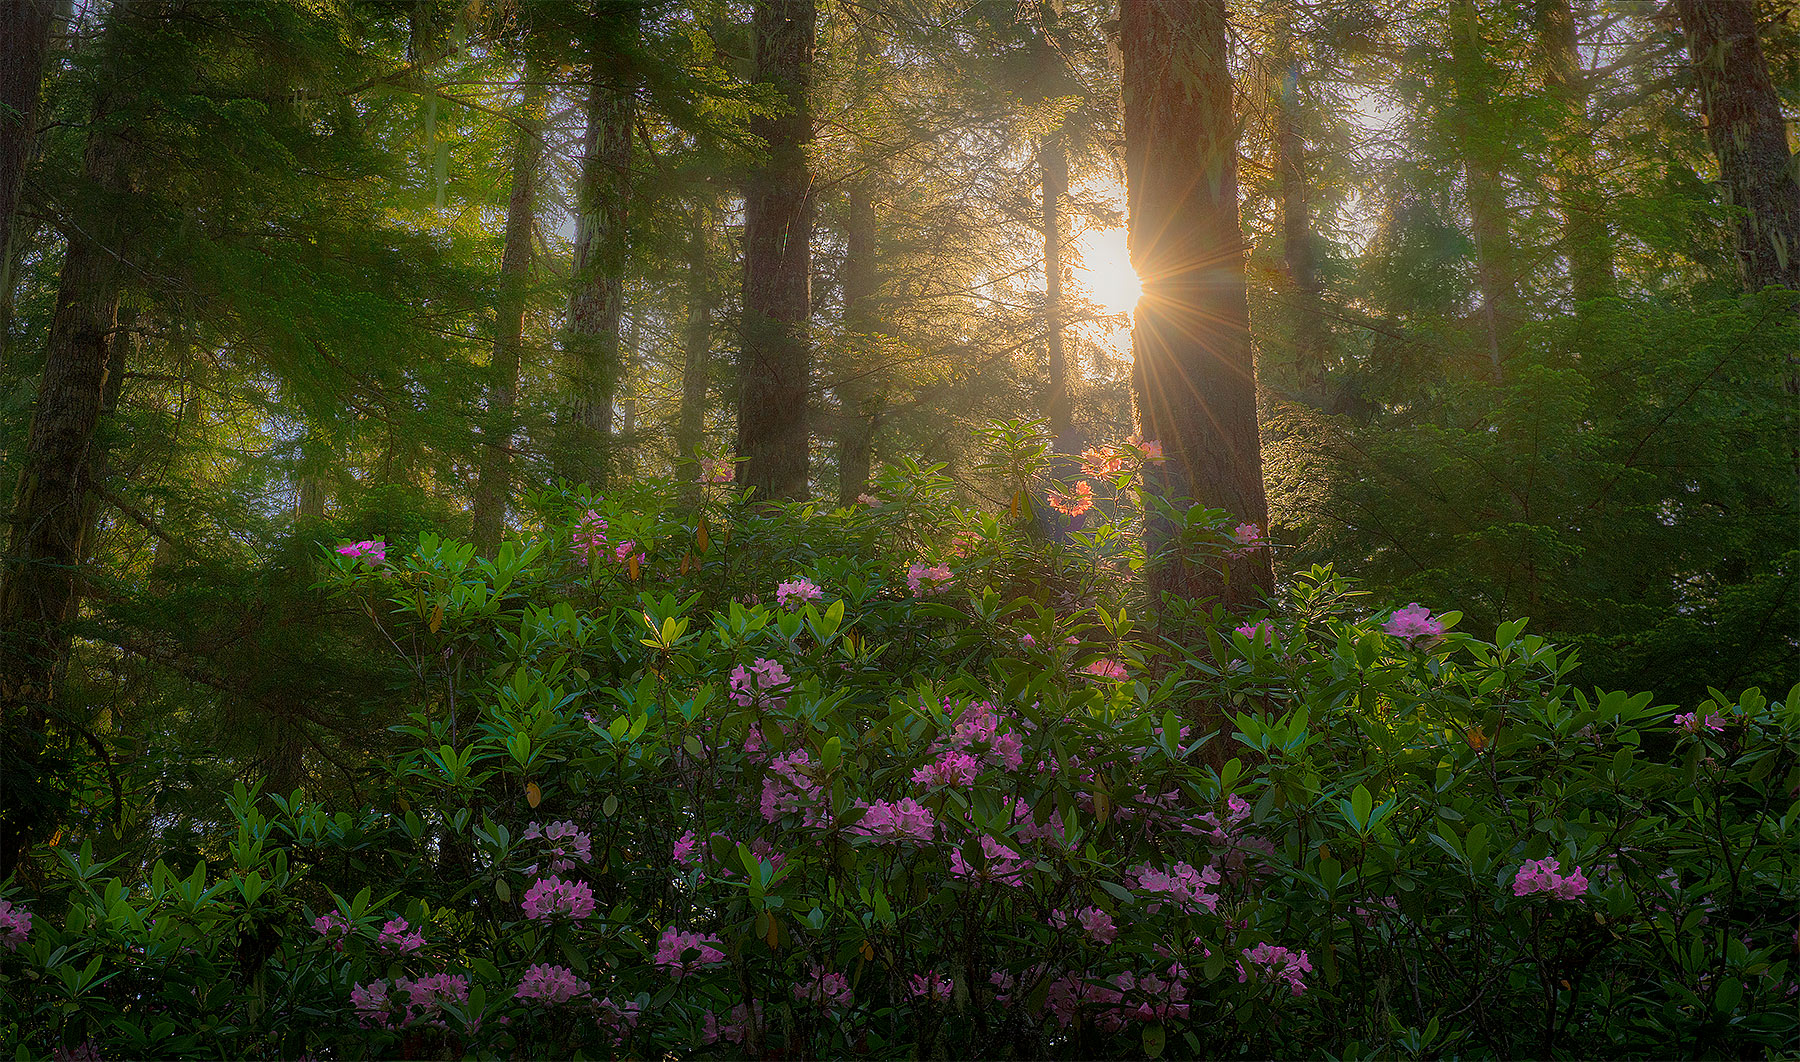 Rhododendron Forest, Willamette National Forest, Oregon